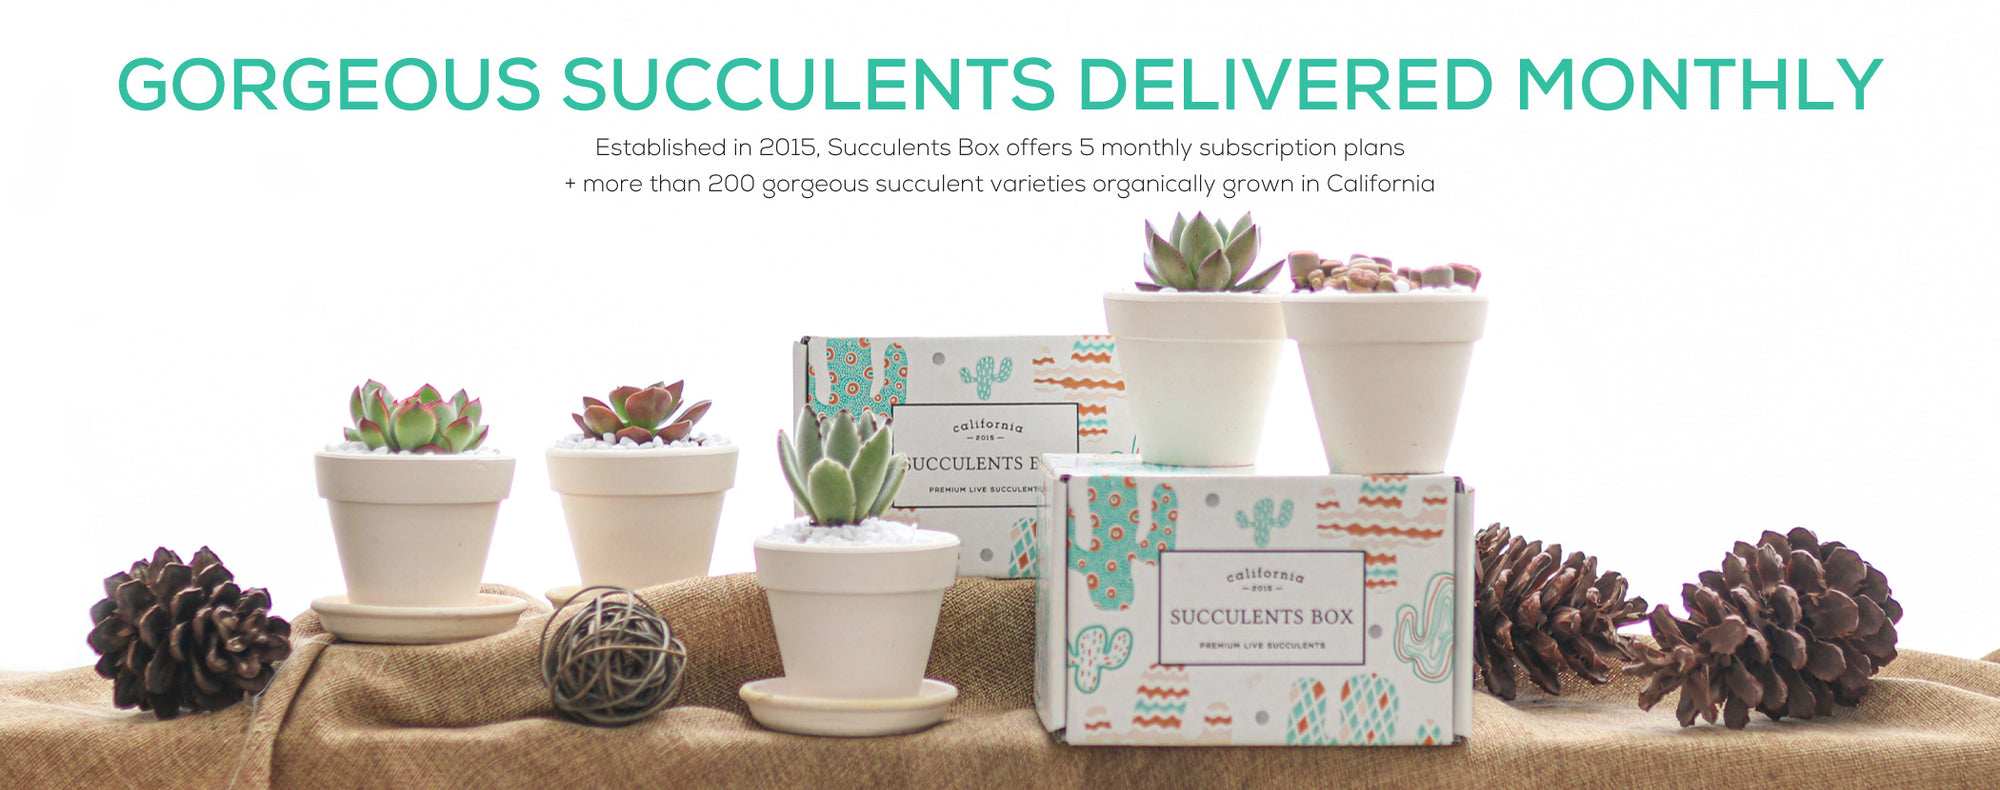 Succulents Subscription Delivered Monthly and Gorgeous Succulent Varieties Organically Grown in California